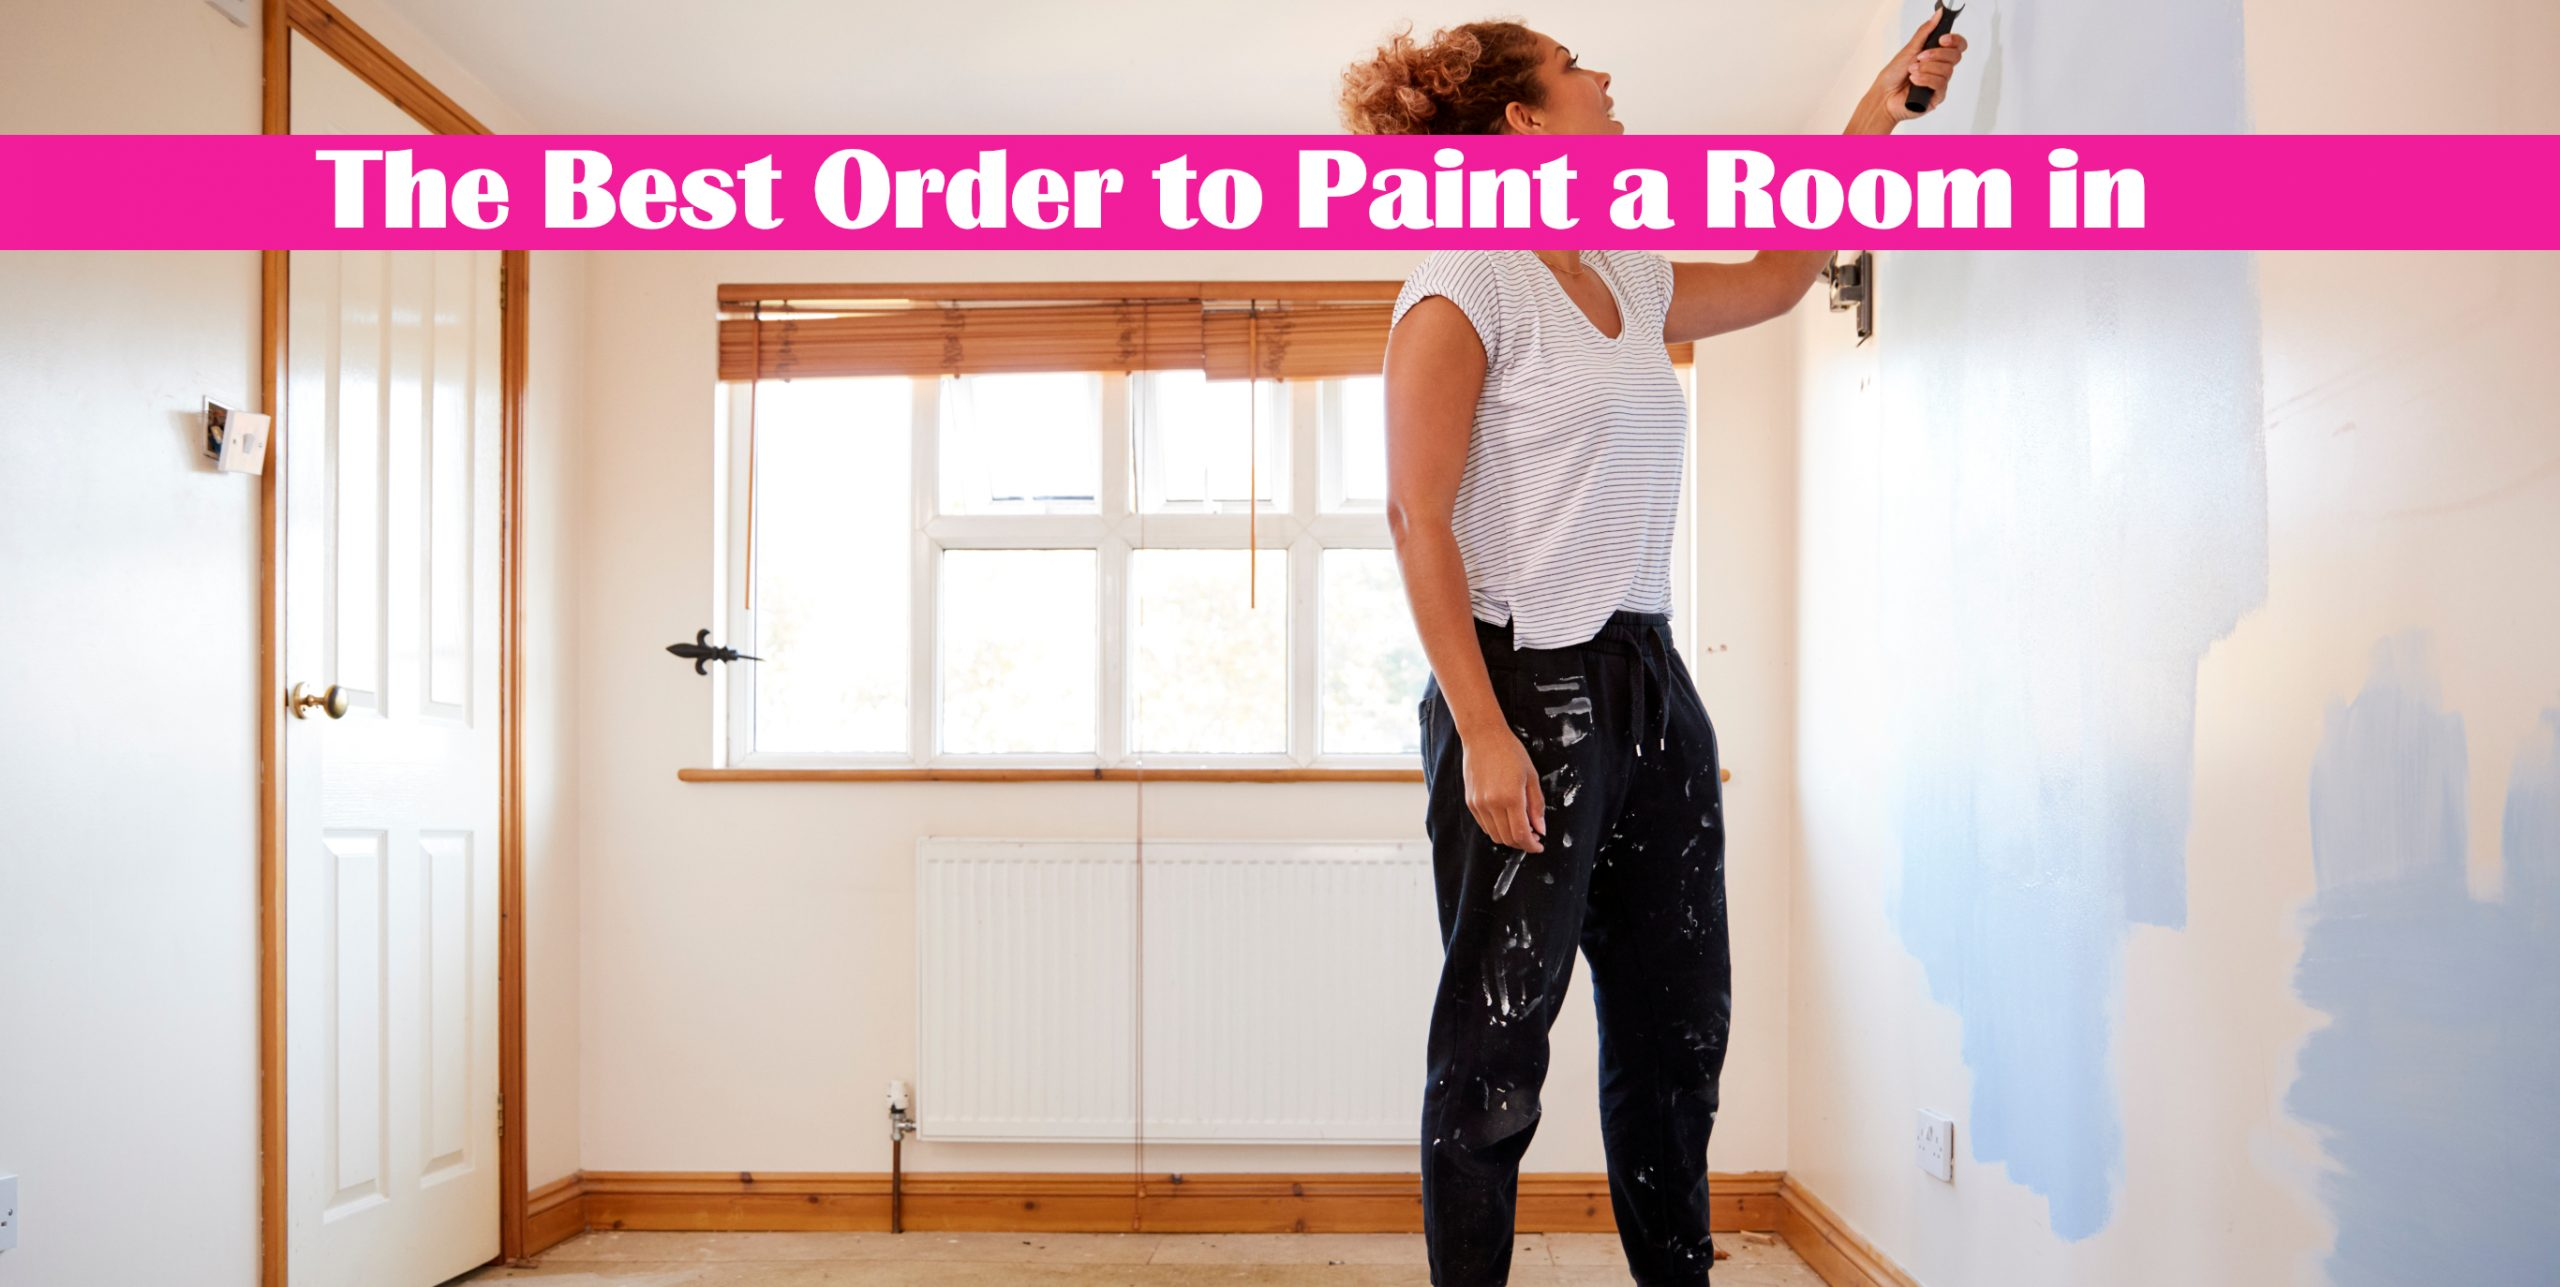 The Best Order to Paint a Room in